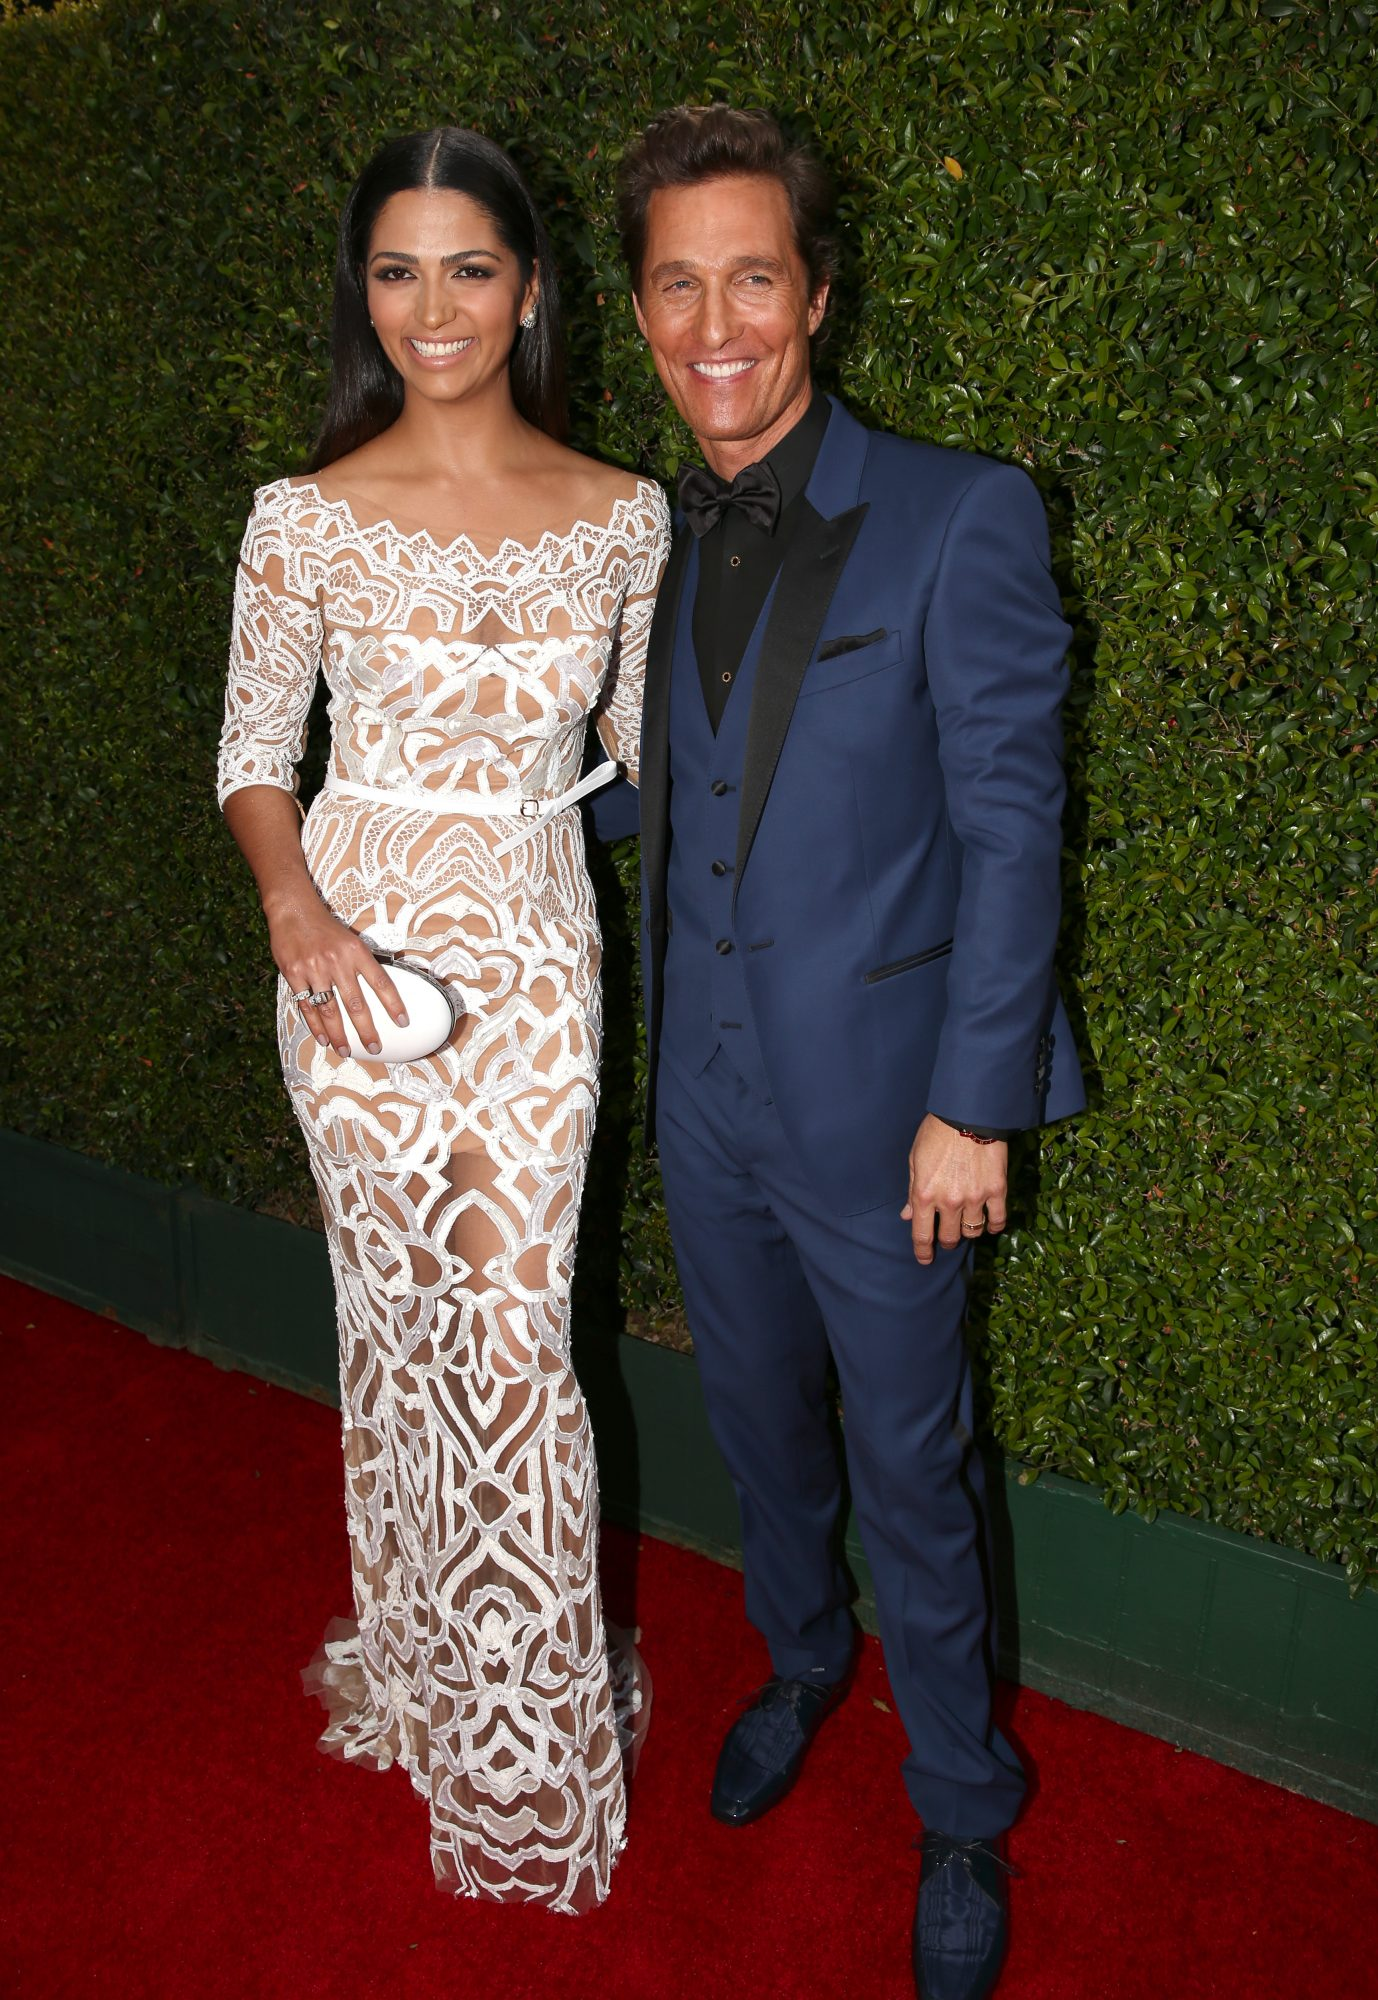 Matthew McConaughey and Camila Alves Wedding